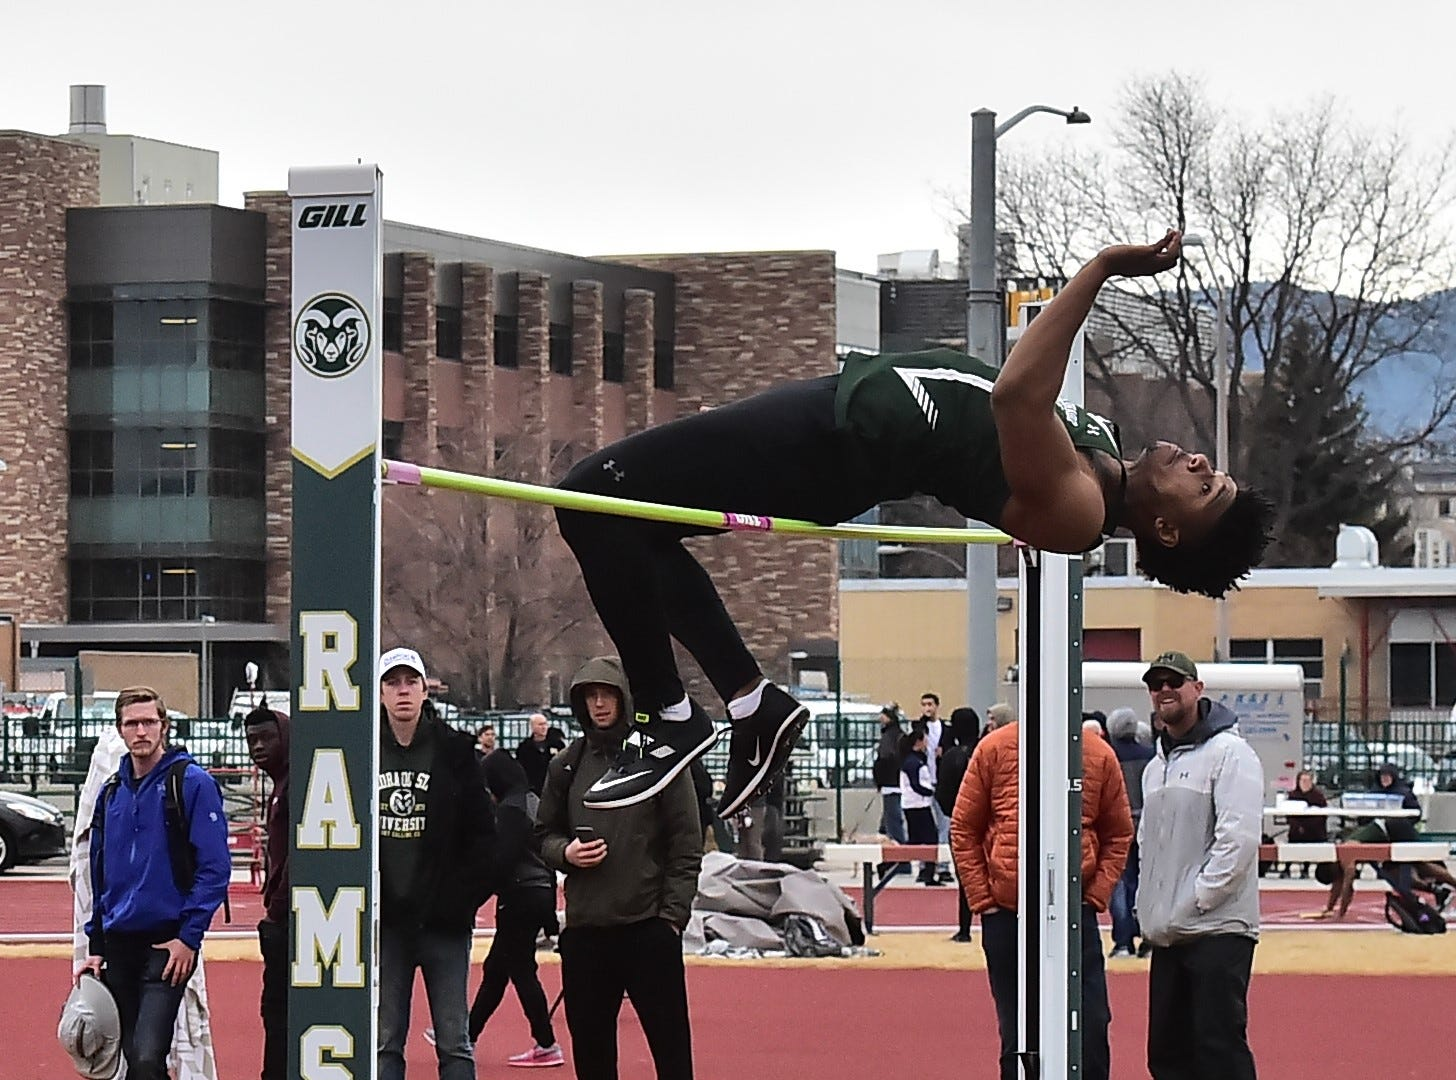 CSU's Antwan Ross-Jones clears 6 feet, 8 inches to finish second in the men's high jump Saturday, March 23, 2019, in the Fum McGraw Open at Colorado State University's Jack Christiansen Track.